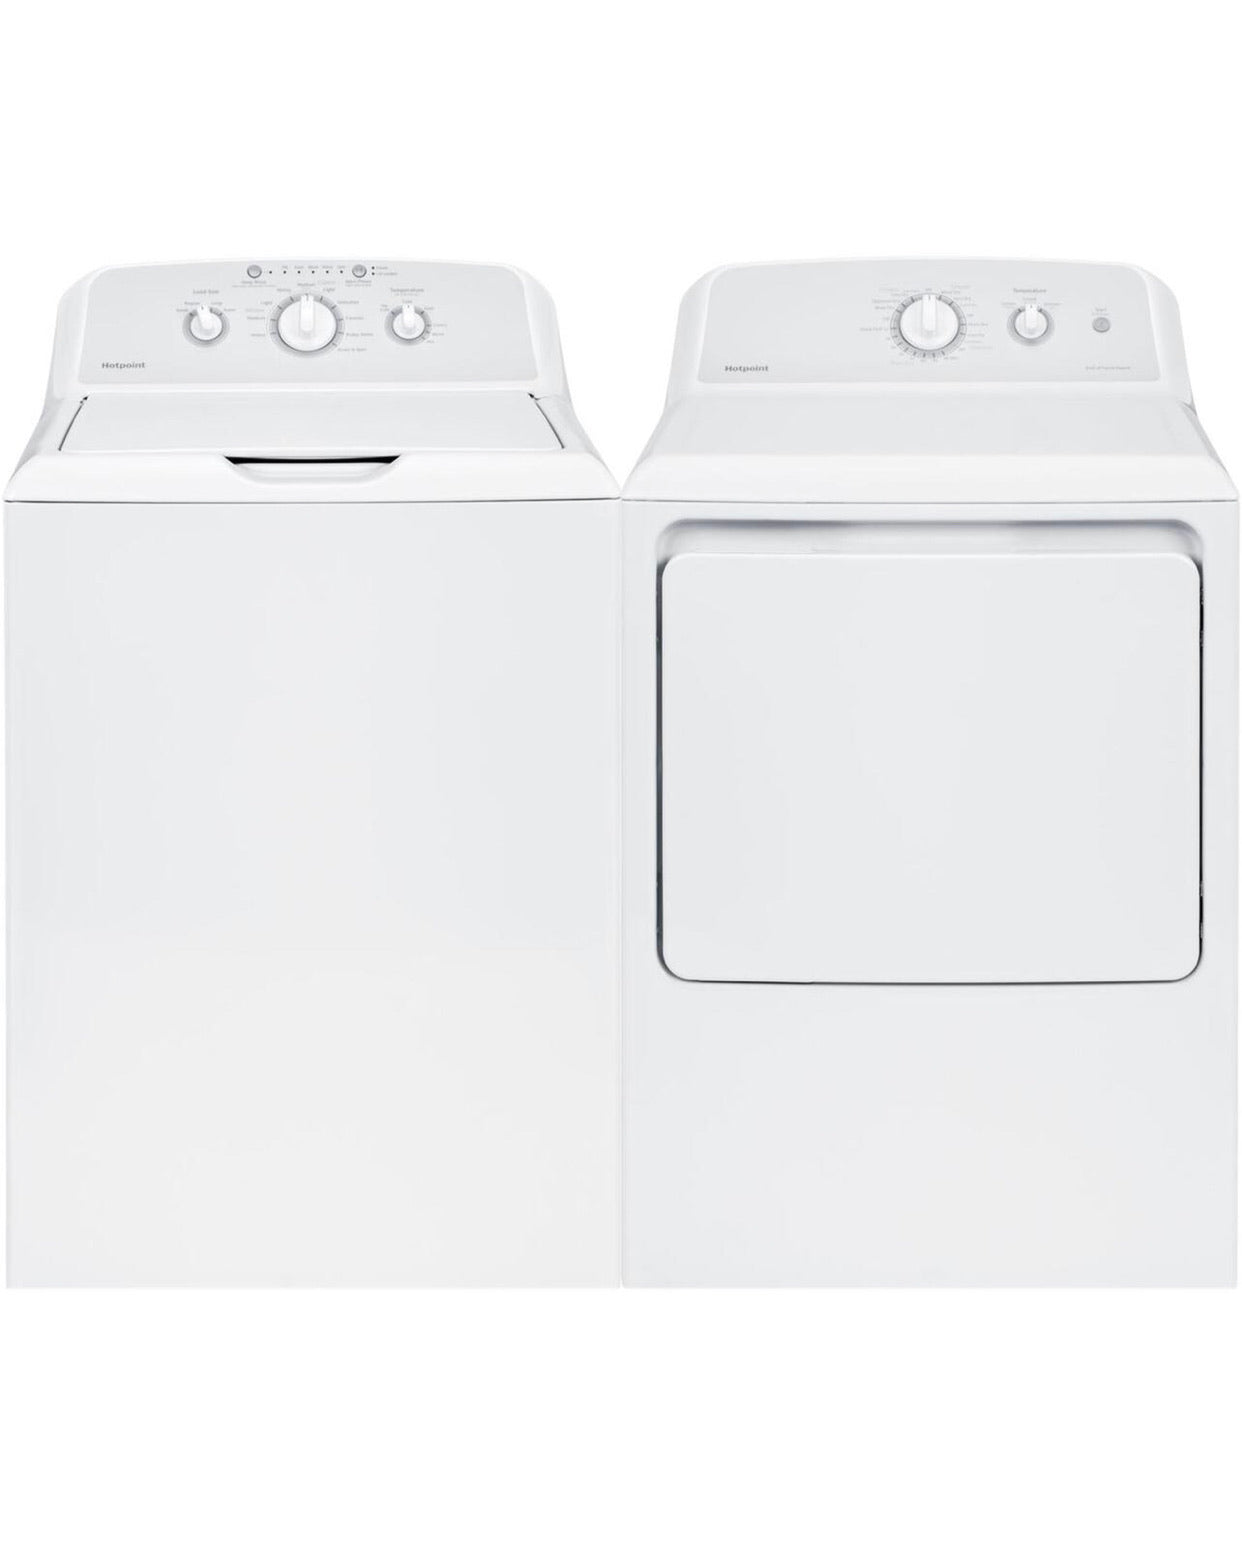 Hotpoint 3.8 cu. ft. White Top Load Washing Machine